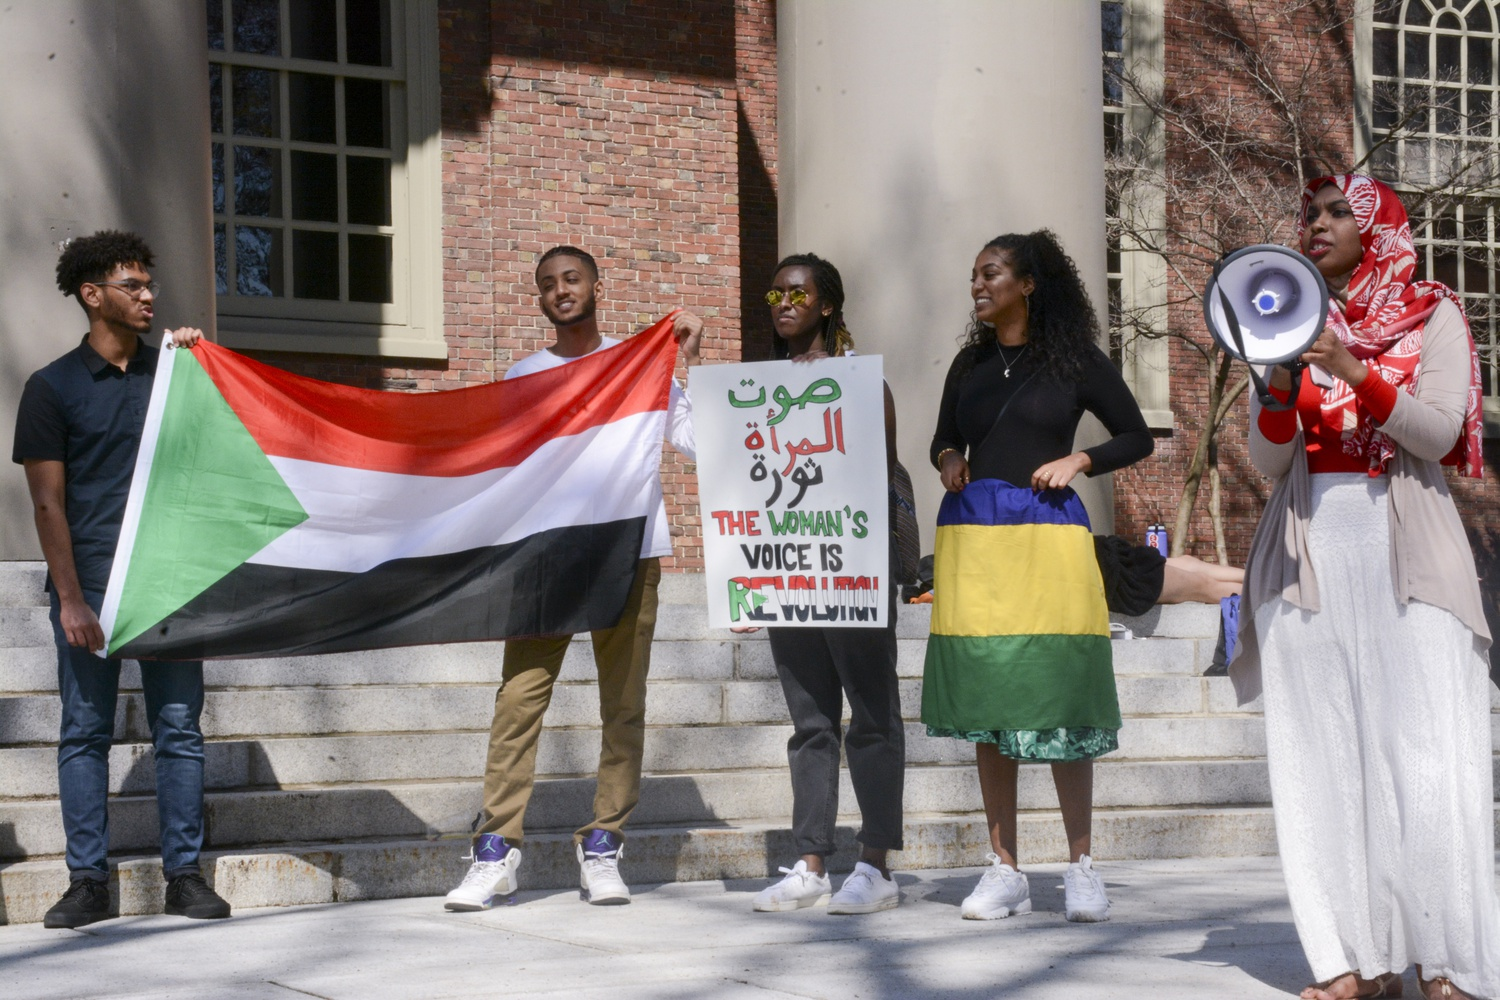 Sudanese students protest in support of democratic governance in Sudan on the steps of Memorial Church on Saturday afternoon. Days before, Omar al-Bashir, the dictator of thirty years, was ousted in a military coup.